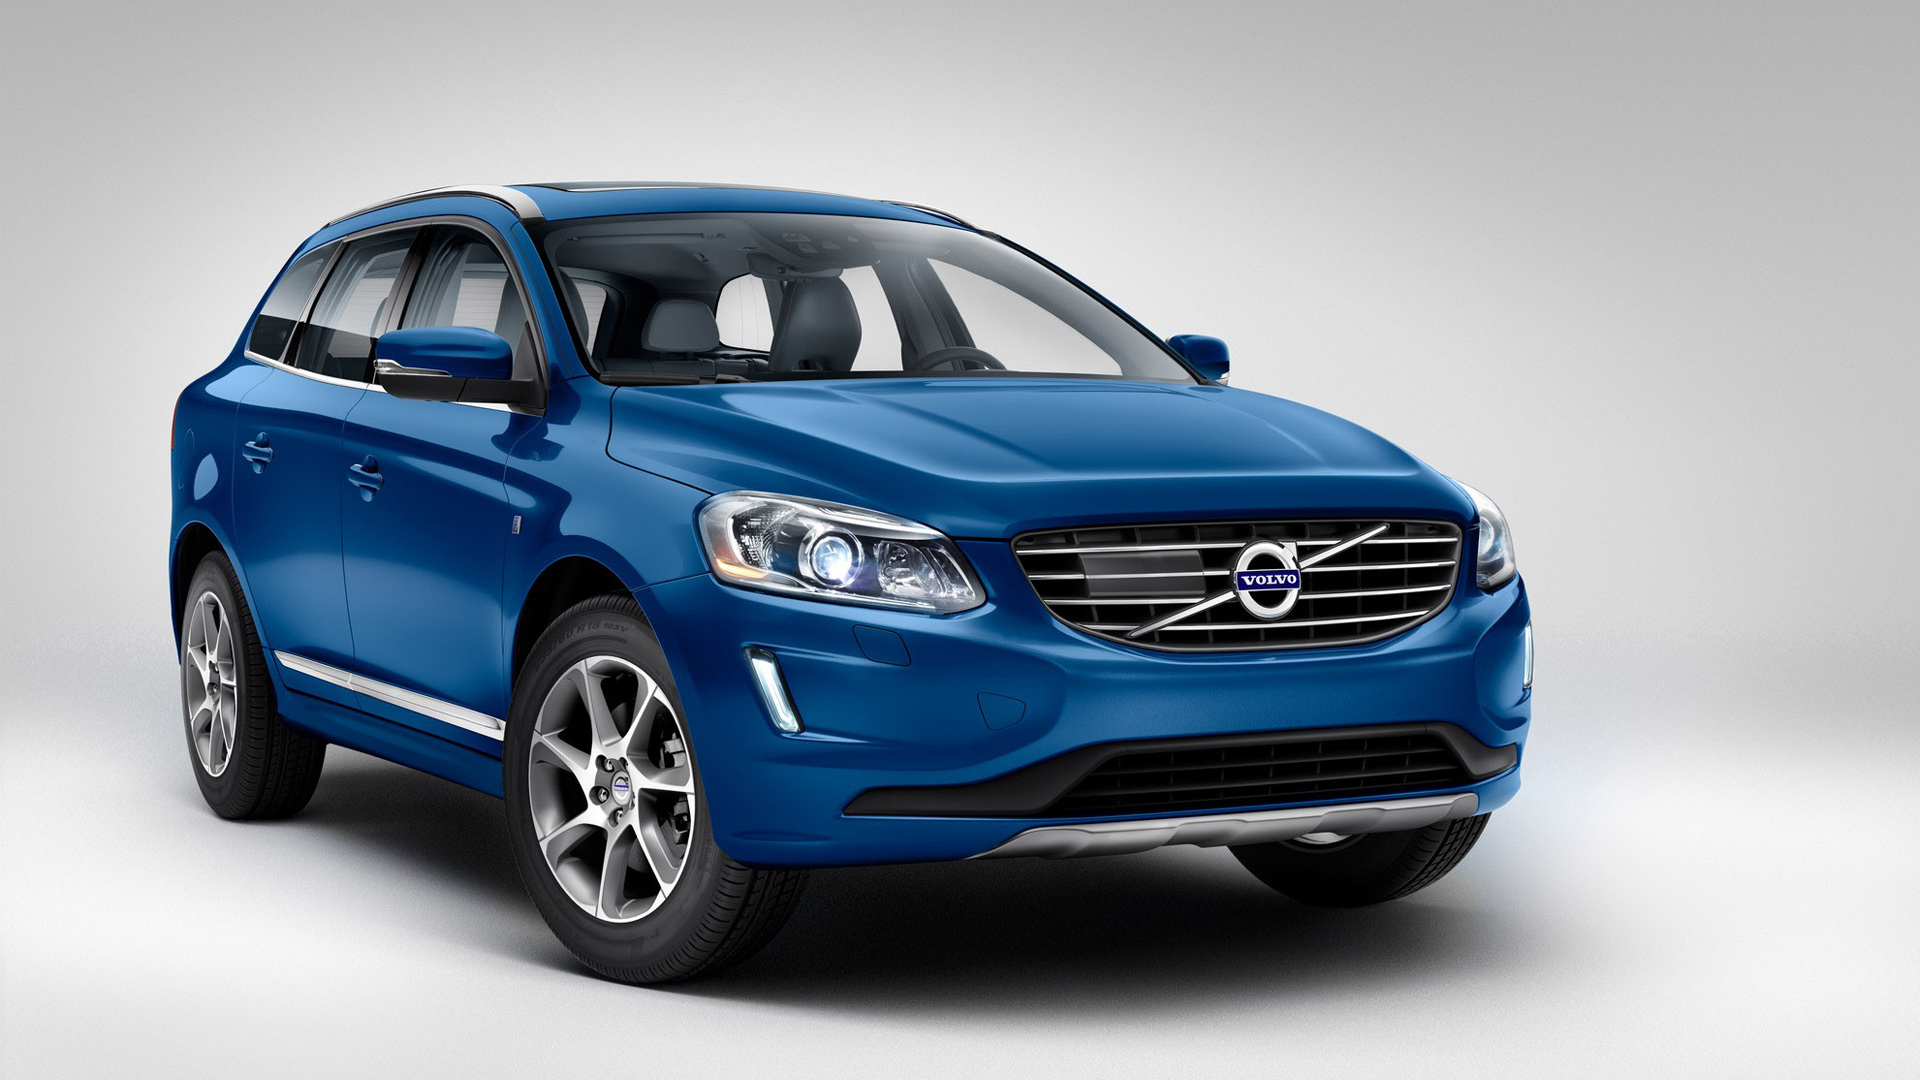 Volvo Ocean Race XC60 Limited Edition Wallpaper HD Car Wallpapers 1920x1080